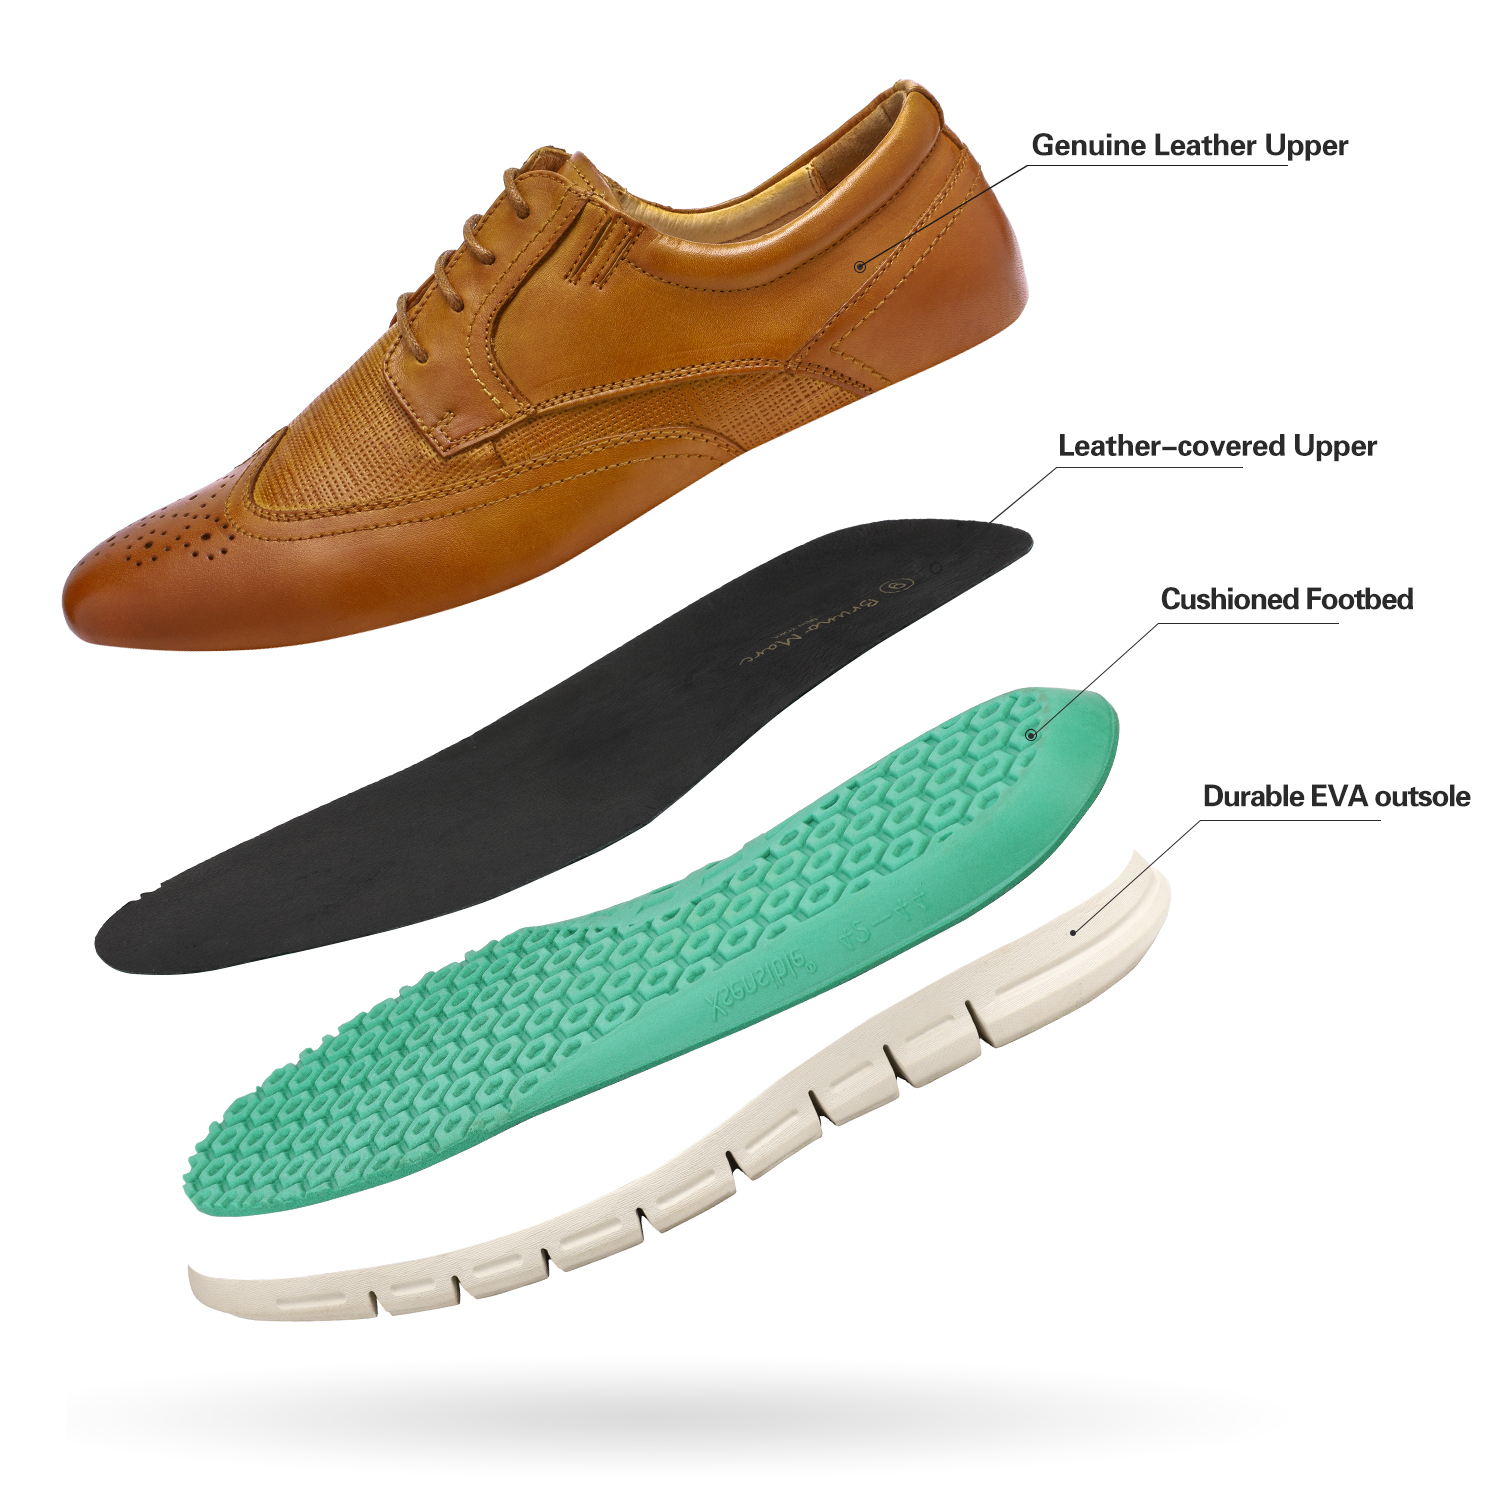 Men-s-Genuine-Leather-Casual-Formal-Sneakers-Lace-up-Business-Oxford-Dress-Shoes thumbnail 20